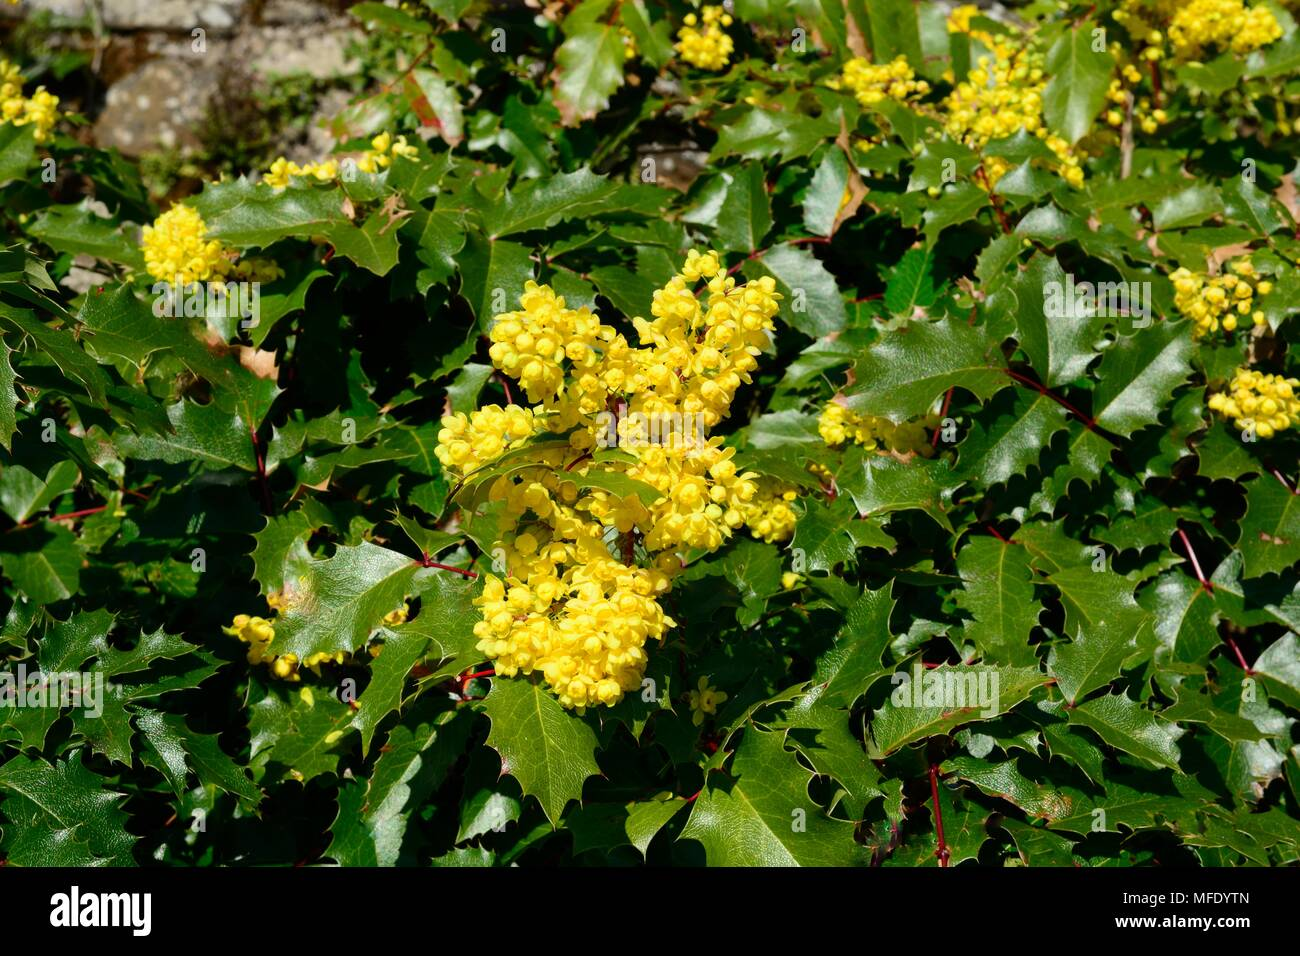 Mahonia Golden Abundance Or Barberries Two Season Plant With Yellow